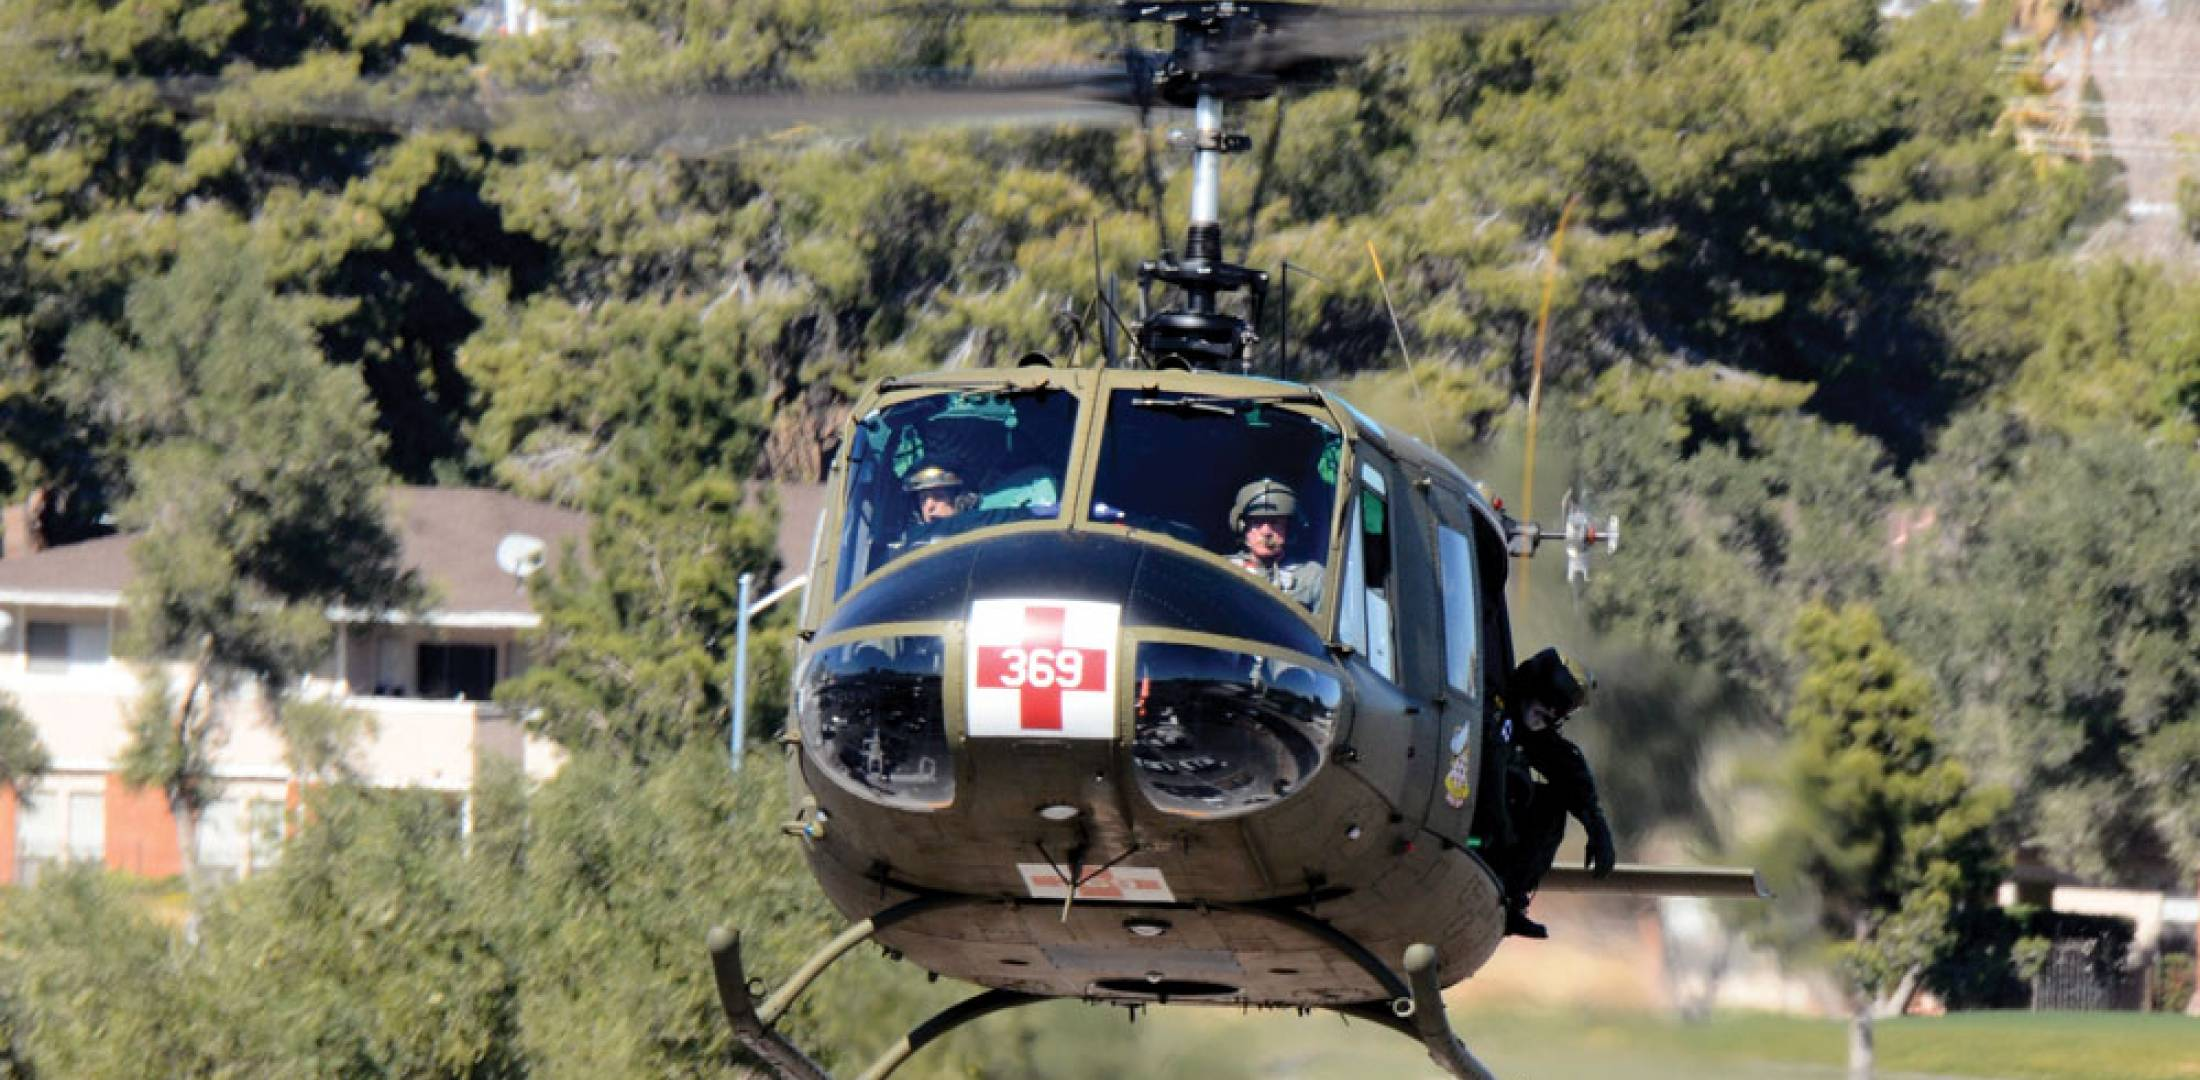 The UH-1Y utility helicopter is one of 100  upgraded Bell H-1s for the U.S. Marines Corps.